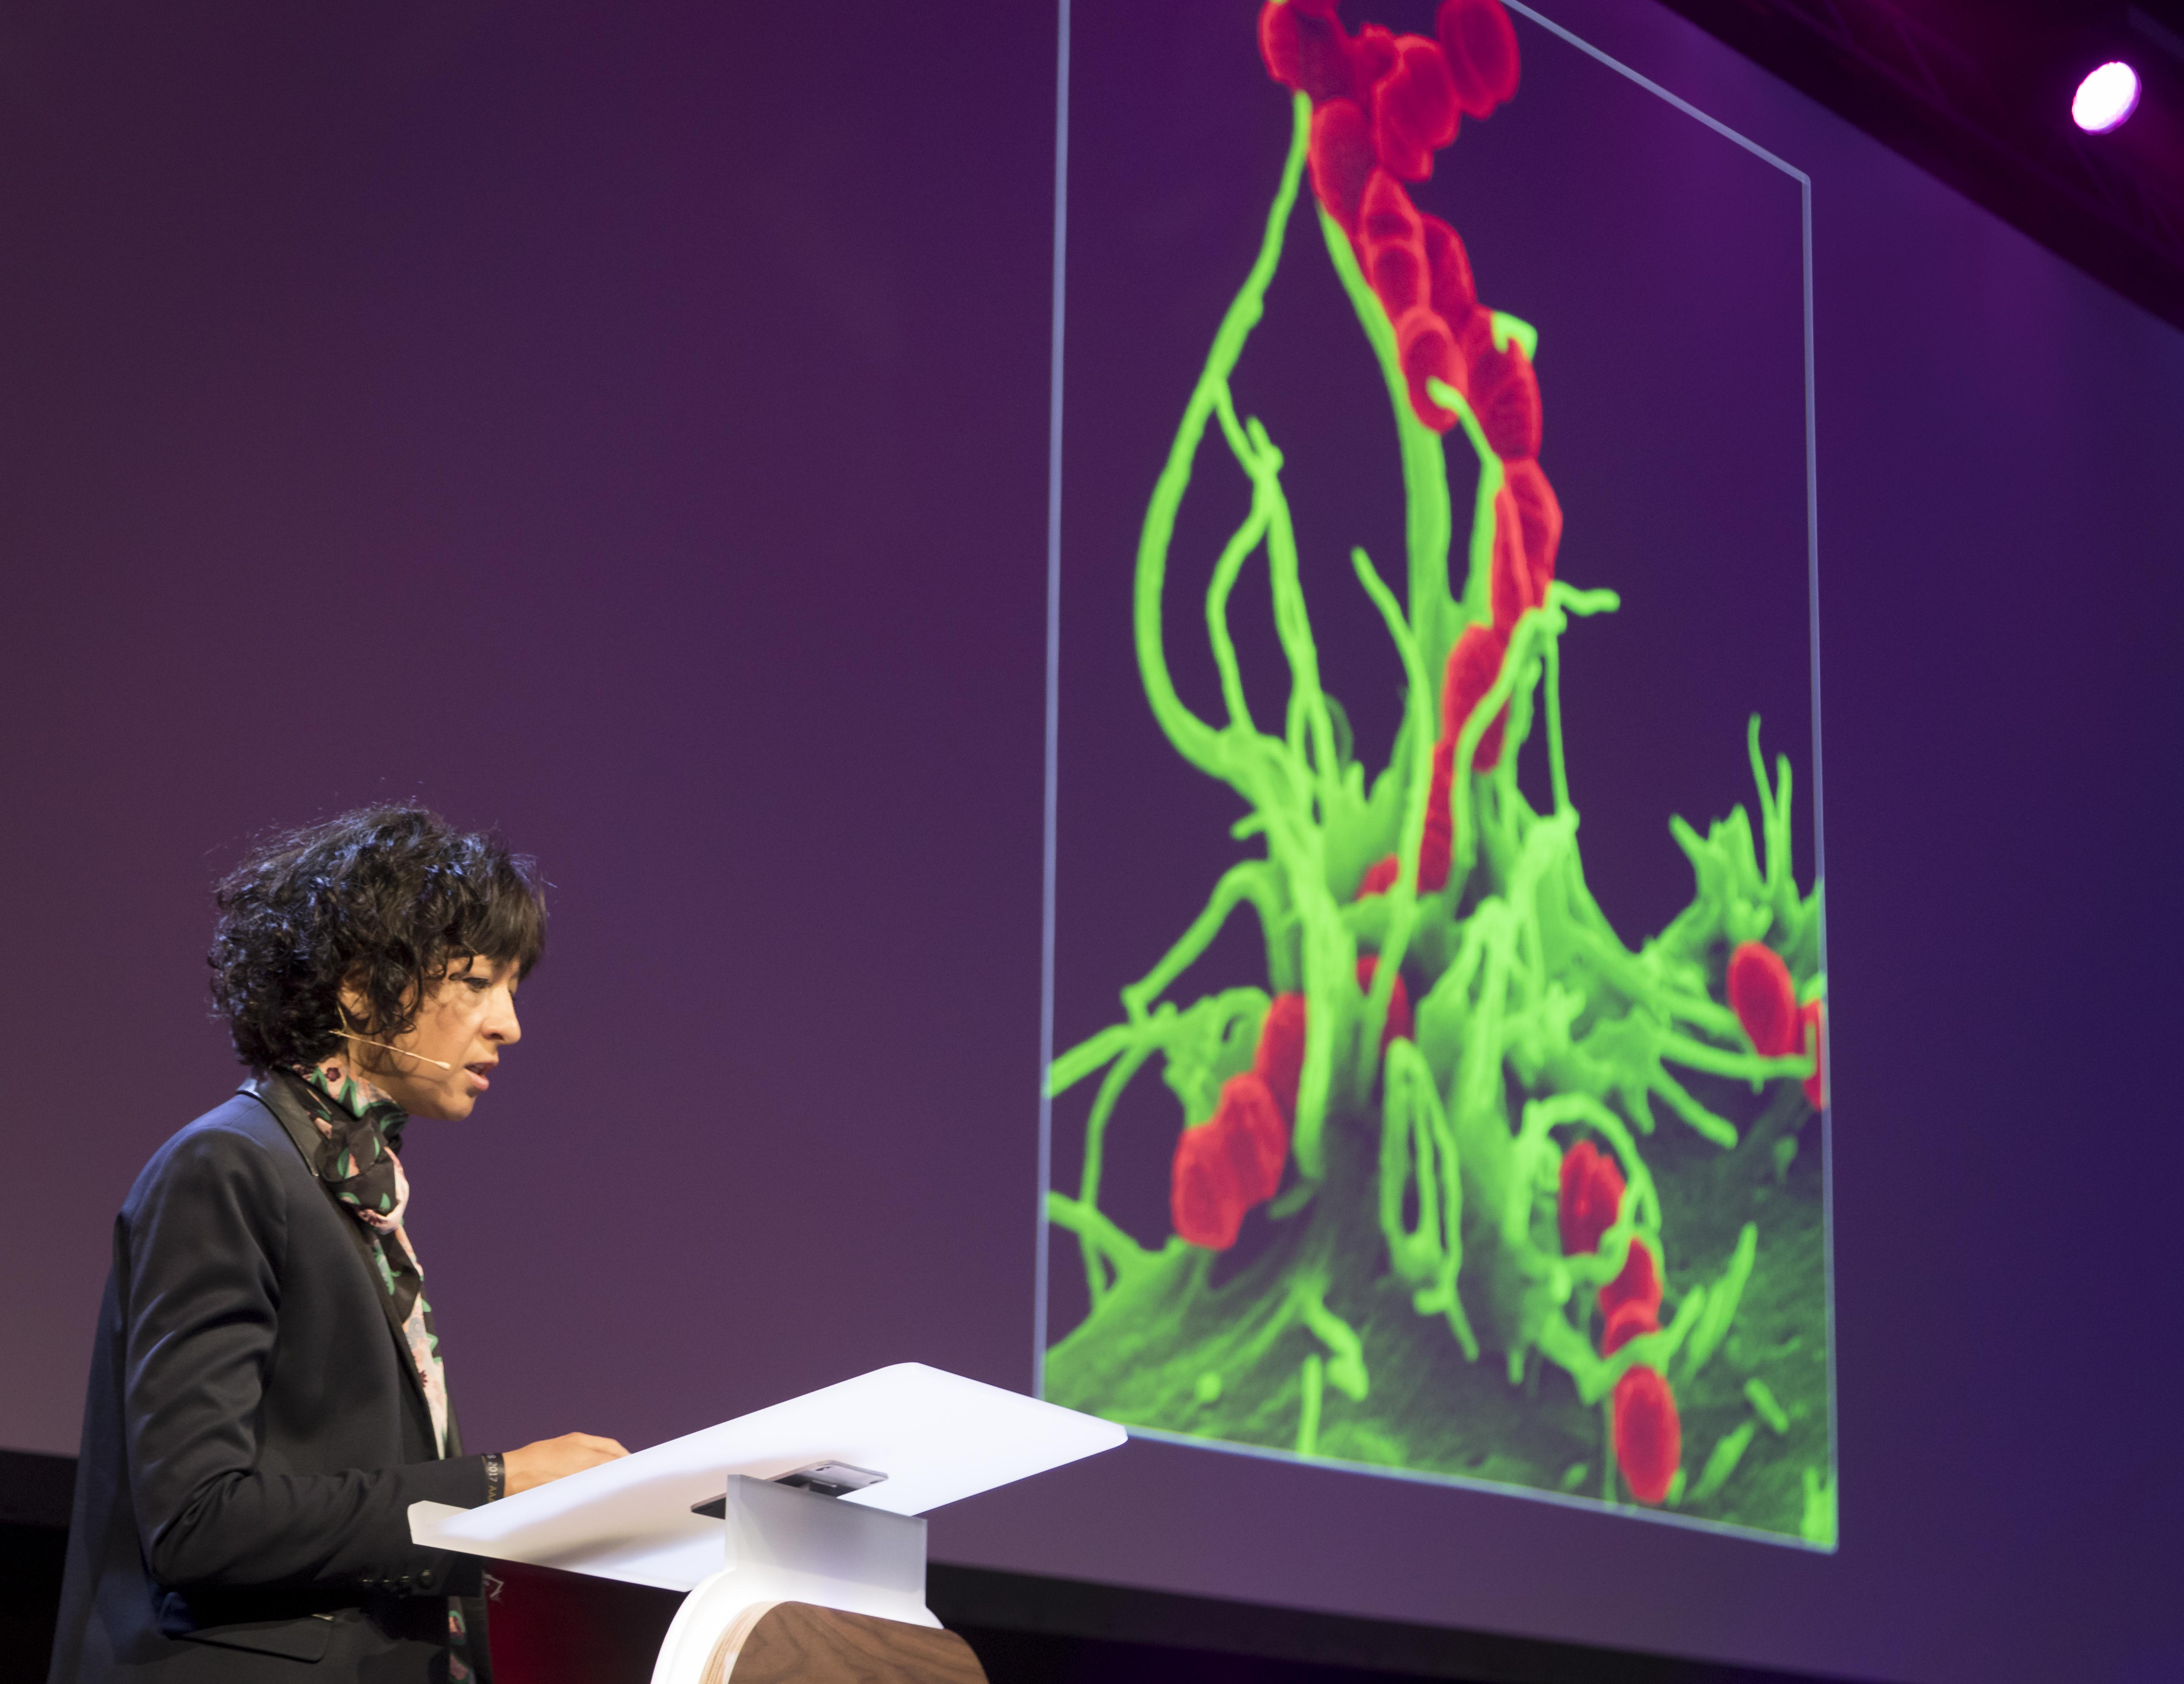 Photo of Charpentier presenting, with a picture of microscopic cells in the background.